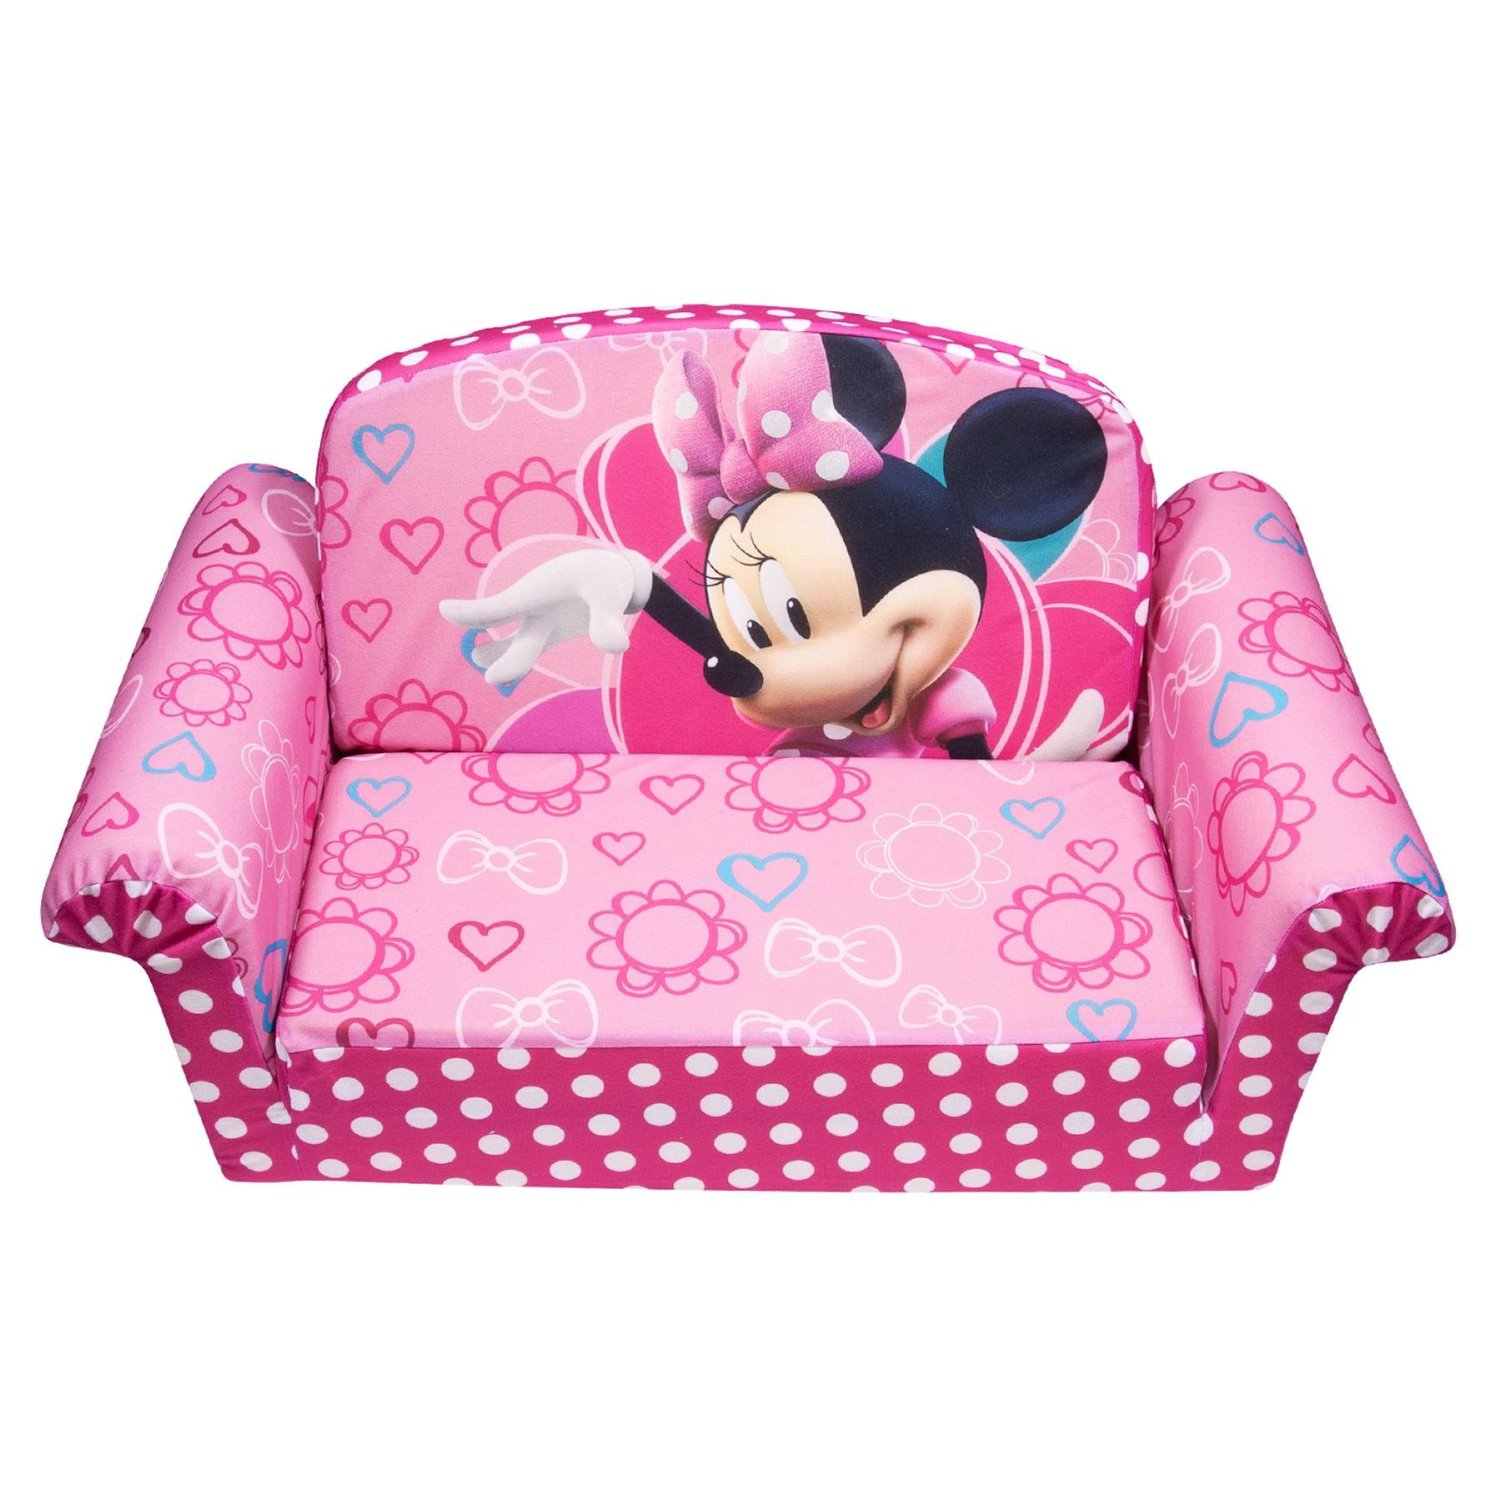 Minnie Mouse Fold Out Couch